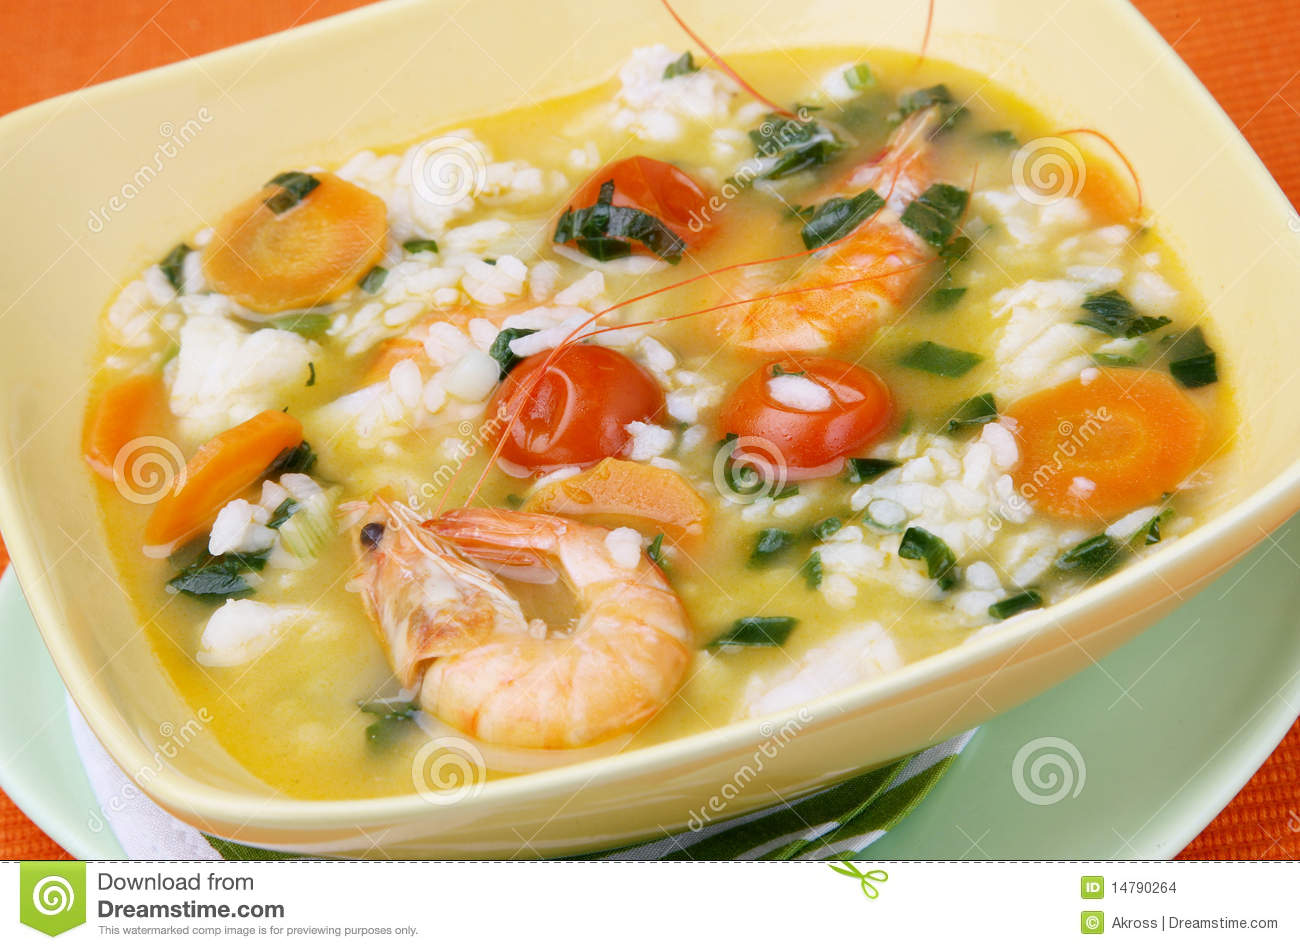 Fish Soup Stock Images - Image: 14790264